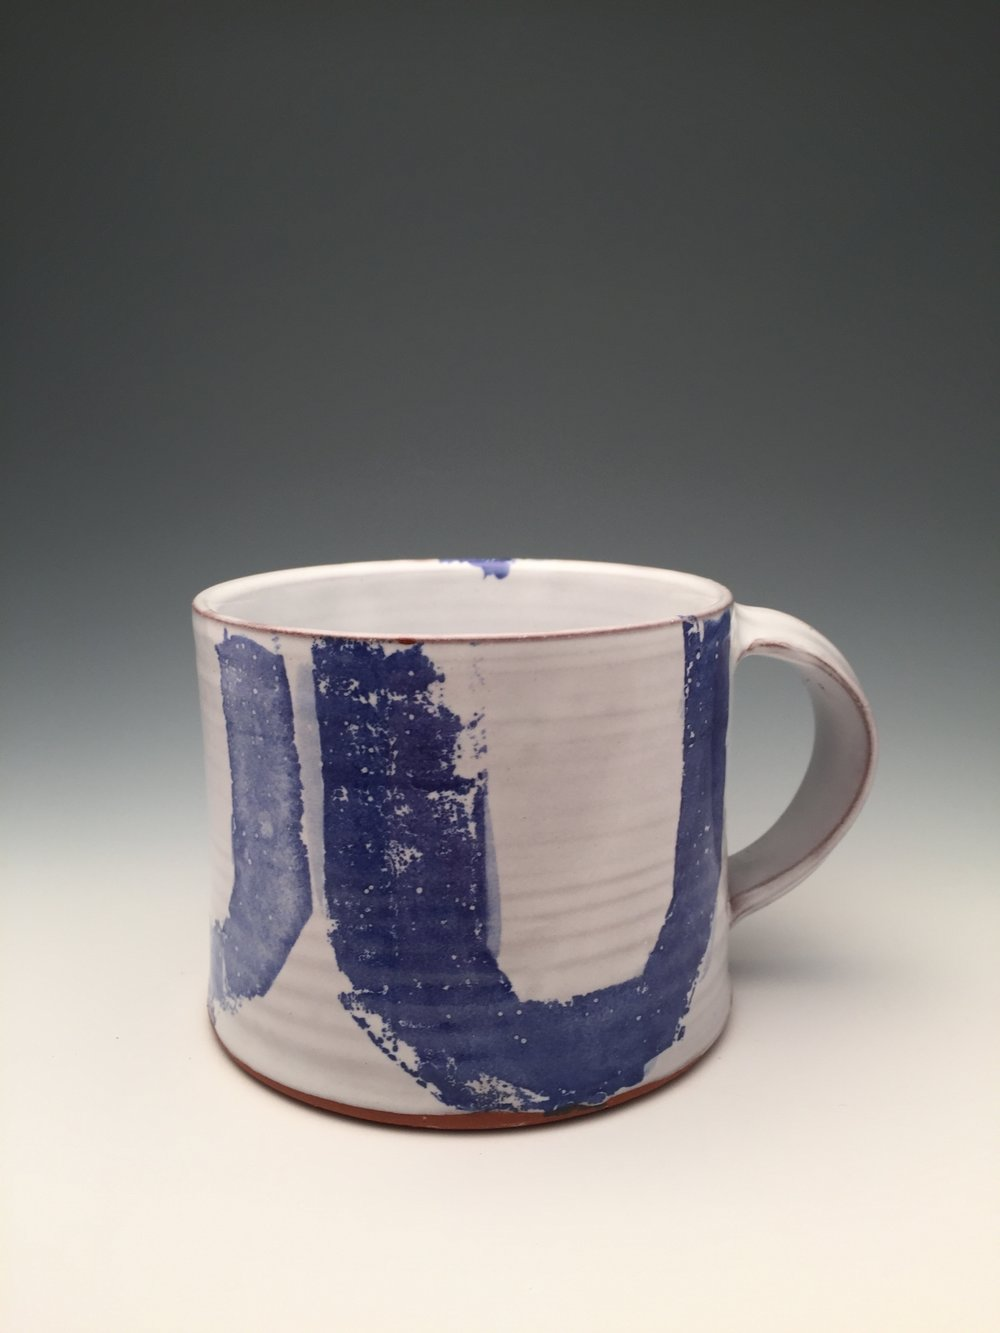 Earthenware mug with majolica glaze. 2016.